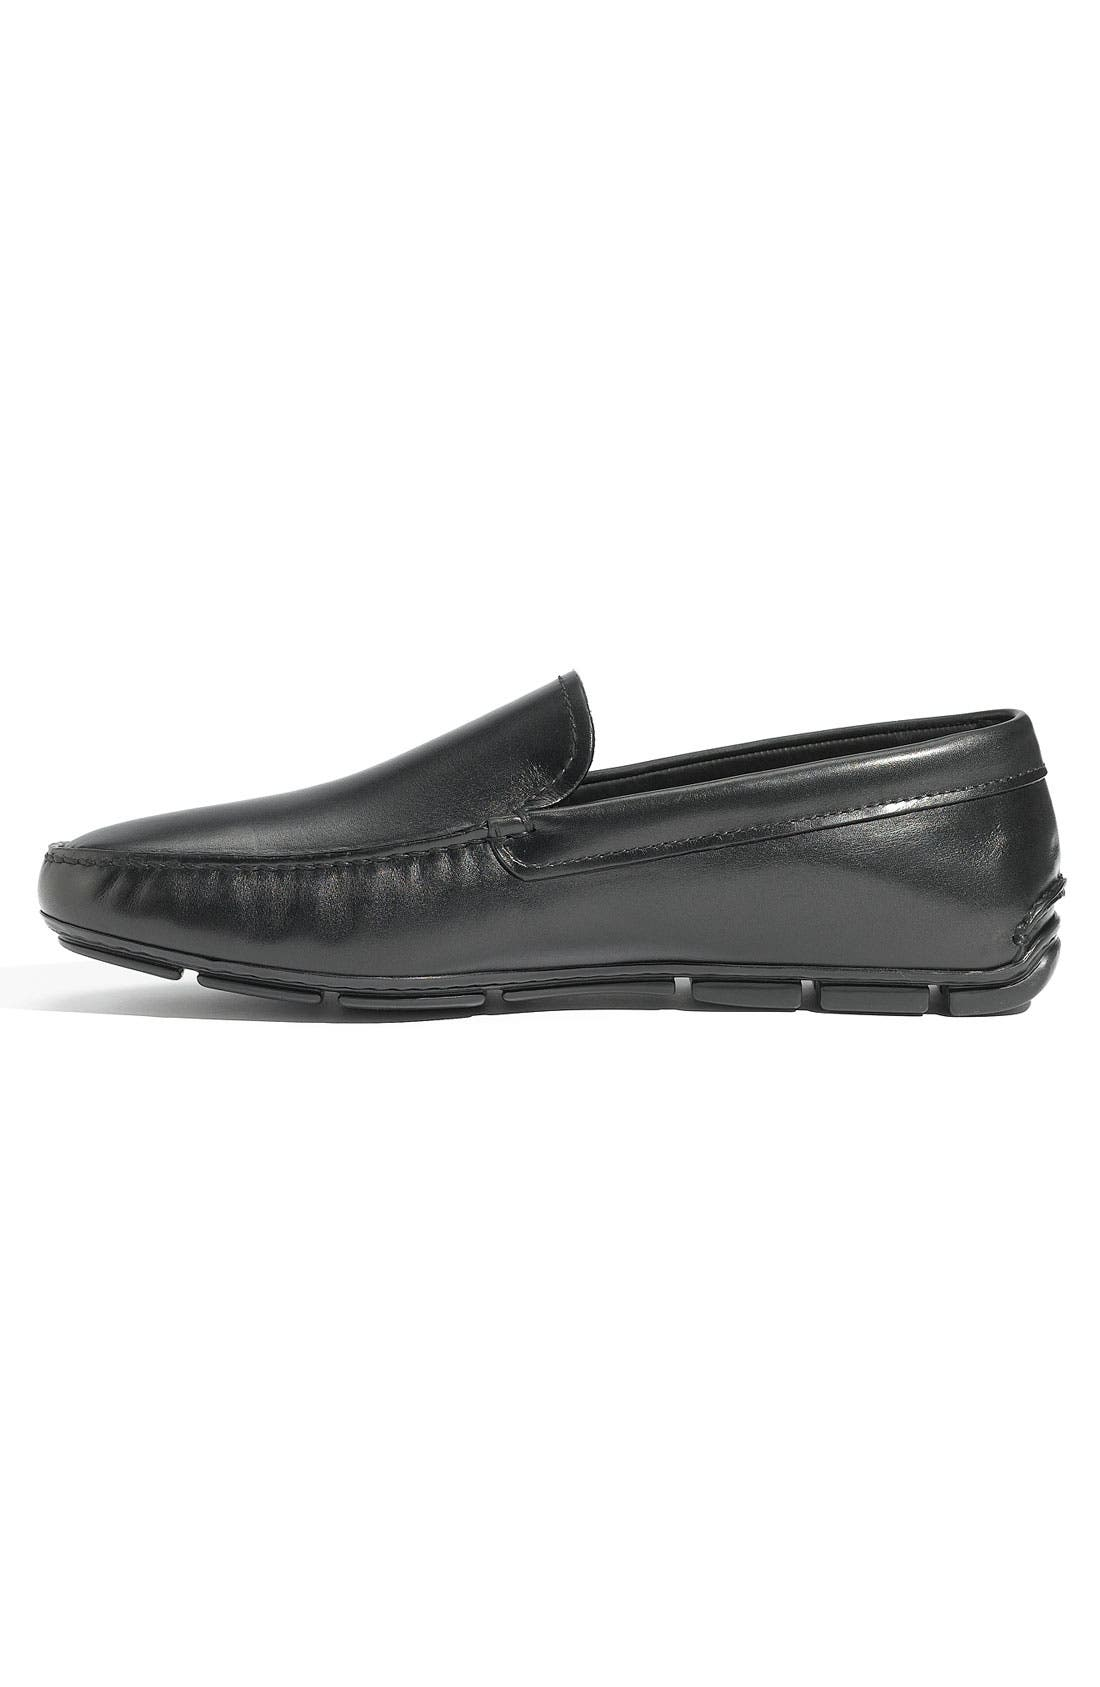 Alternate Image 2  - Prada Leather Driving Shoe (Men)